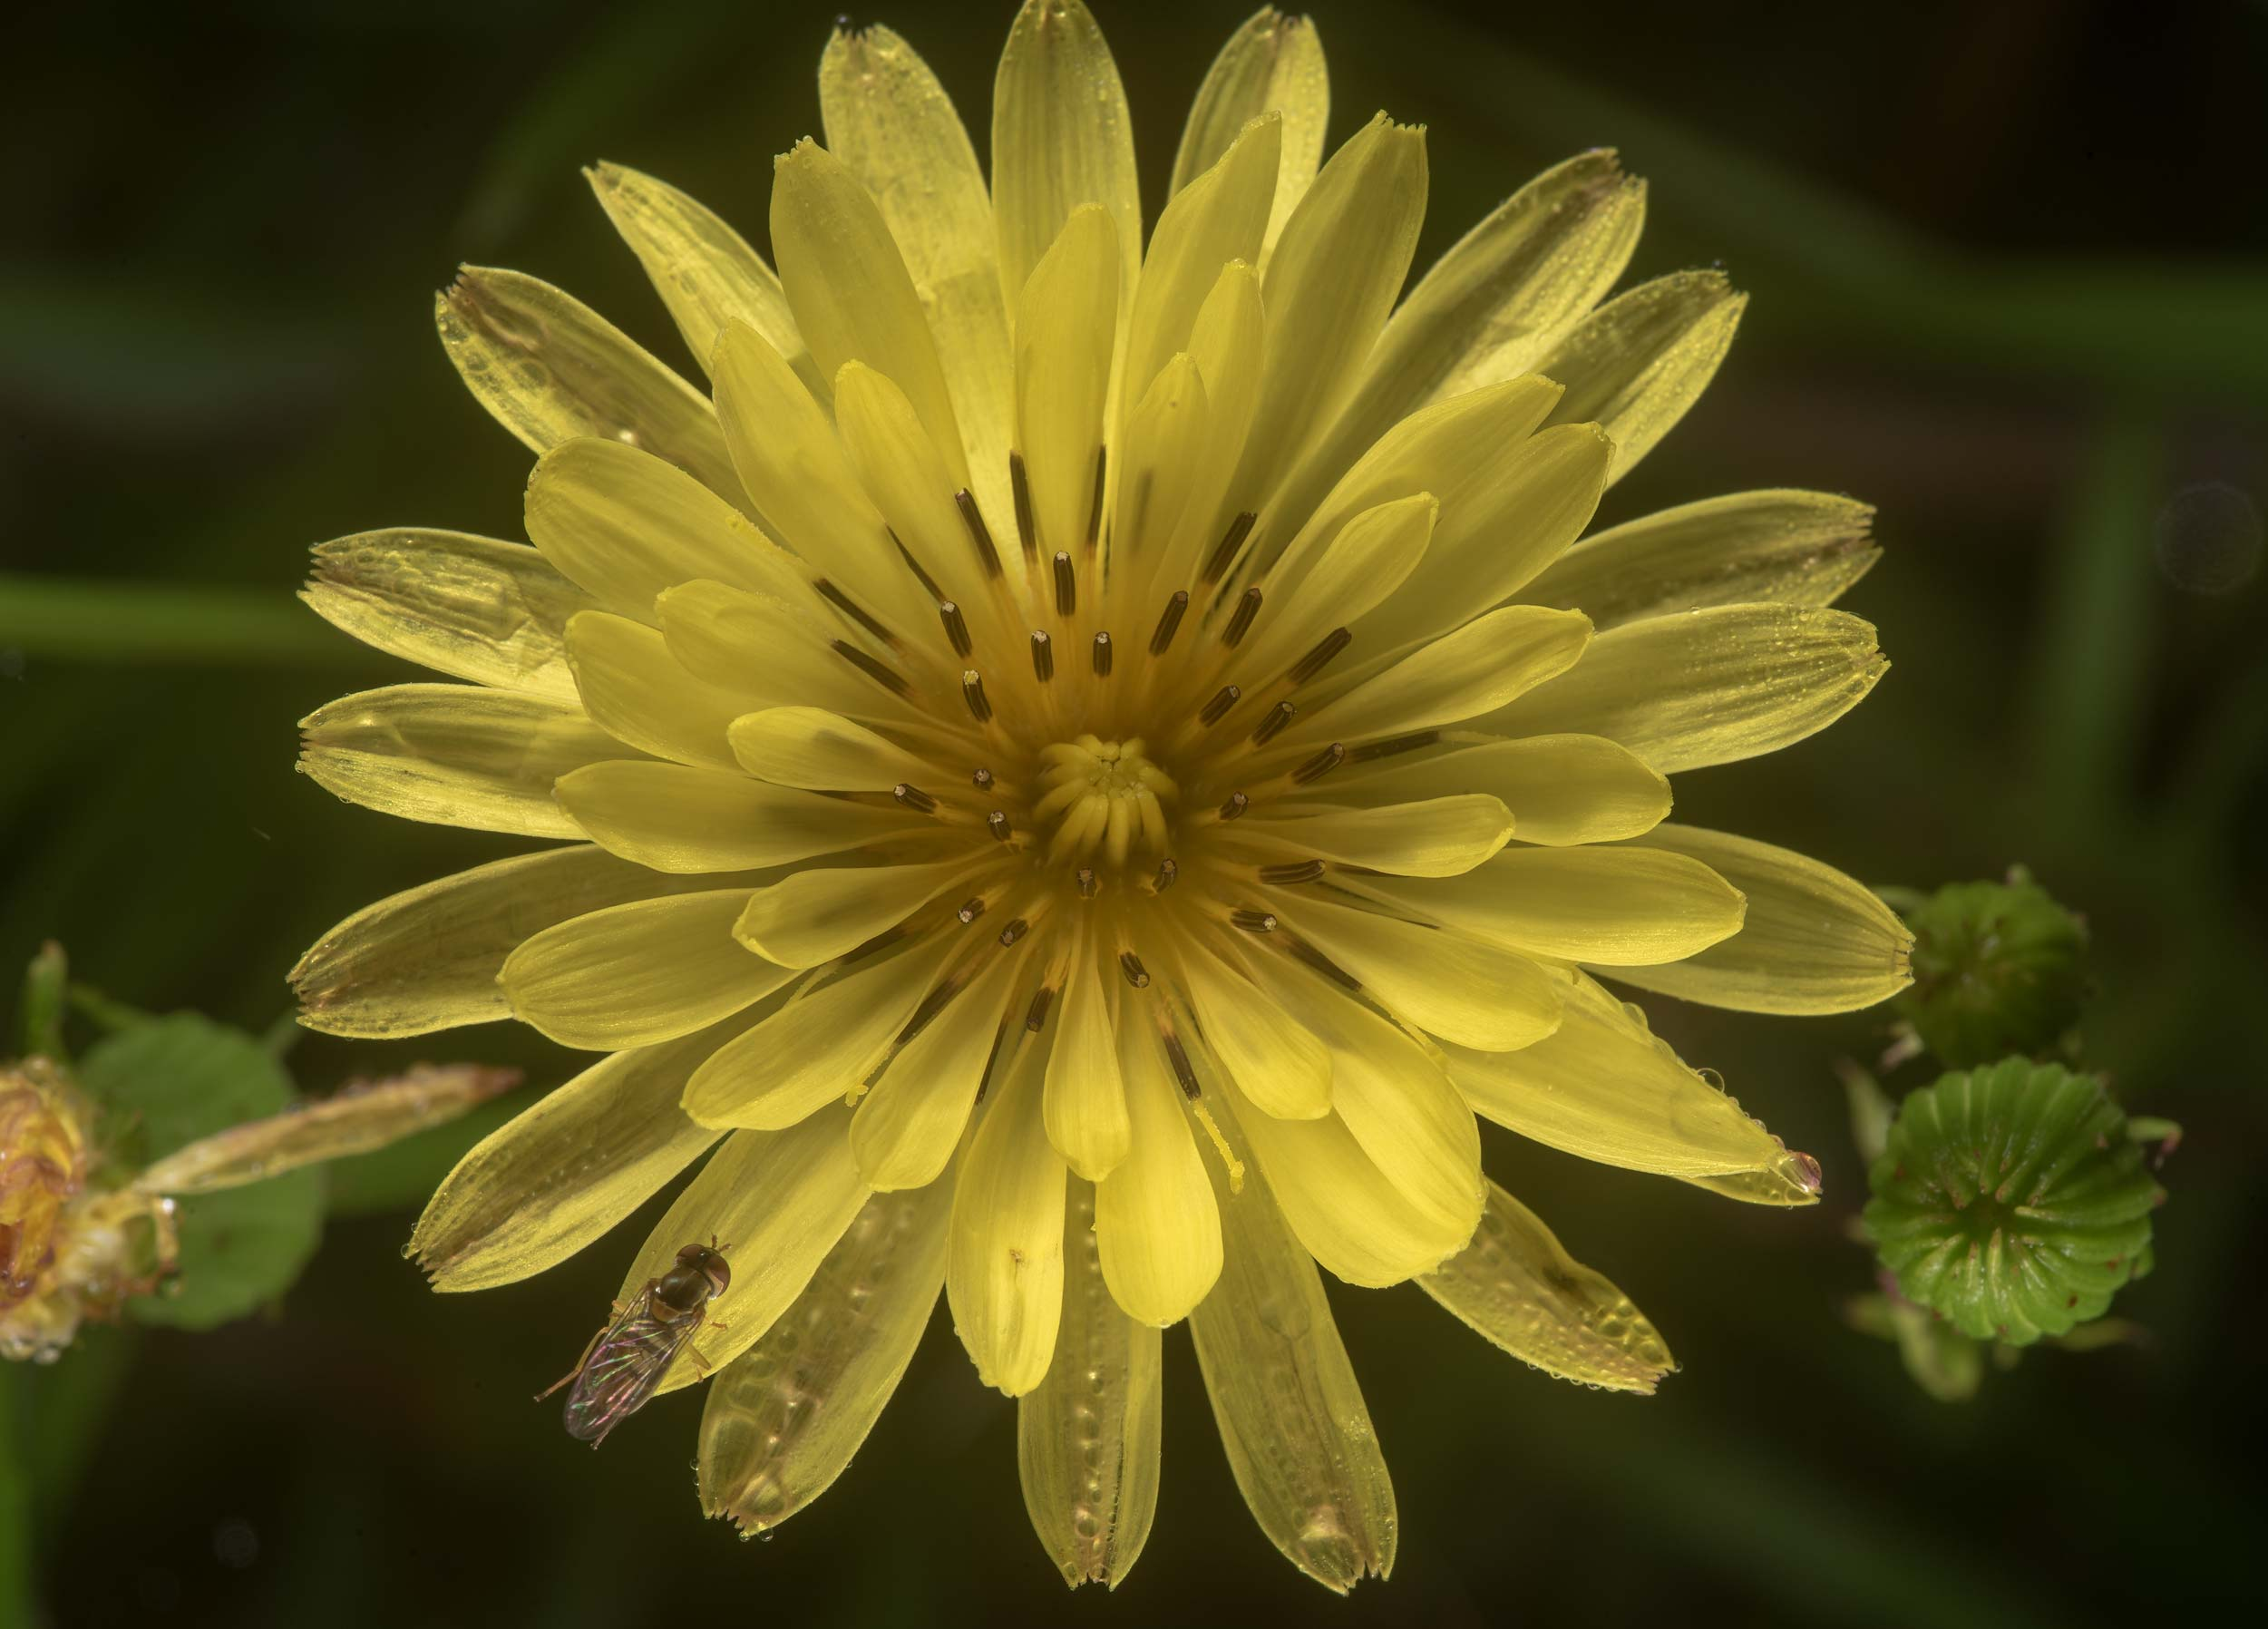 Texas dandelion (Pyrrhopappus) in David E. Schob...Ashburn St.. College Station, Texas